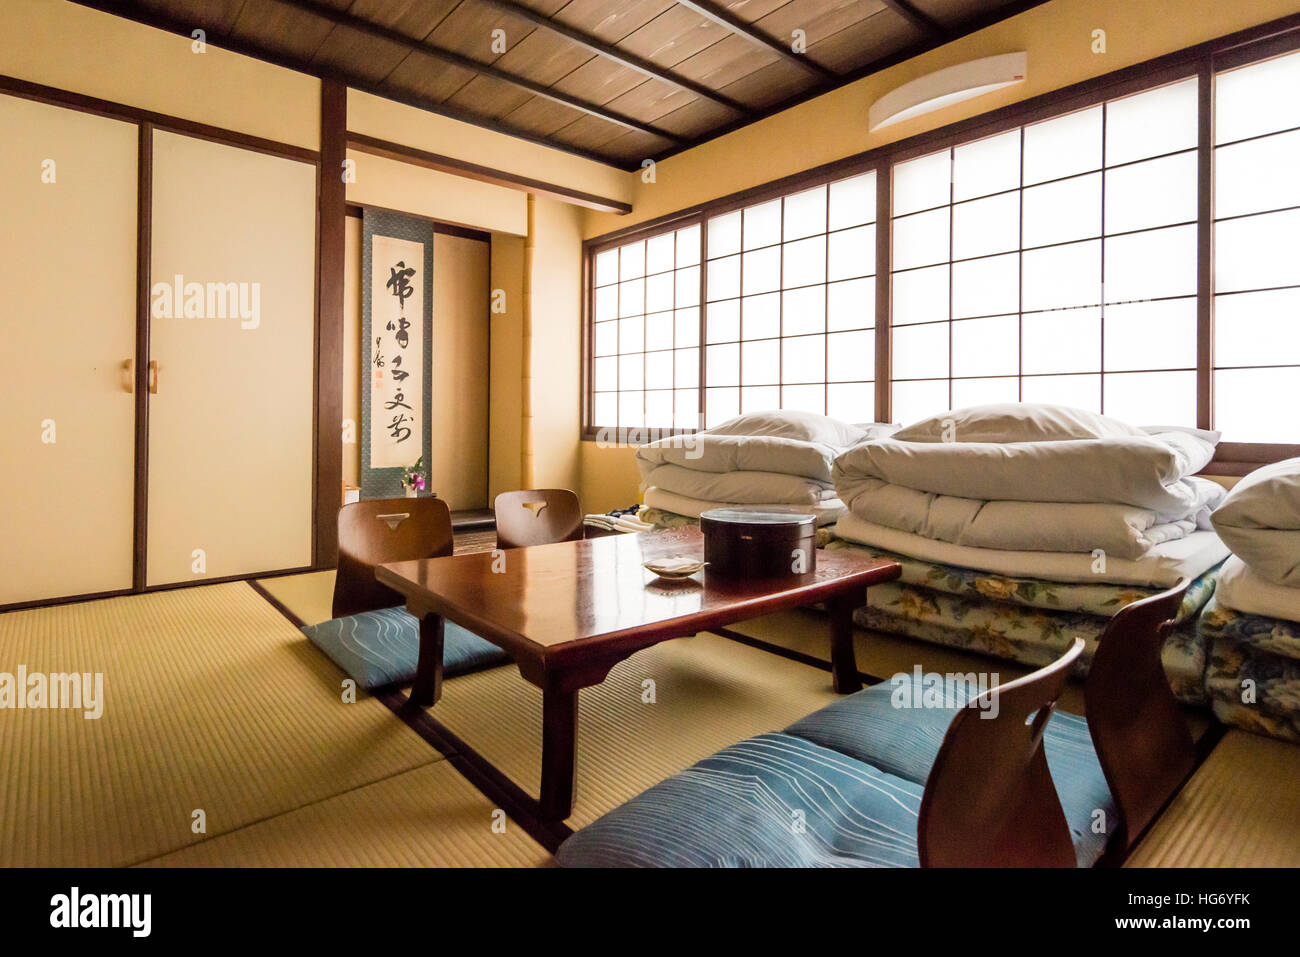 Pleasant Interior Of A Typical Budget Traditional Japanese Style Room Interior Design Ideas Philsoteloinfo